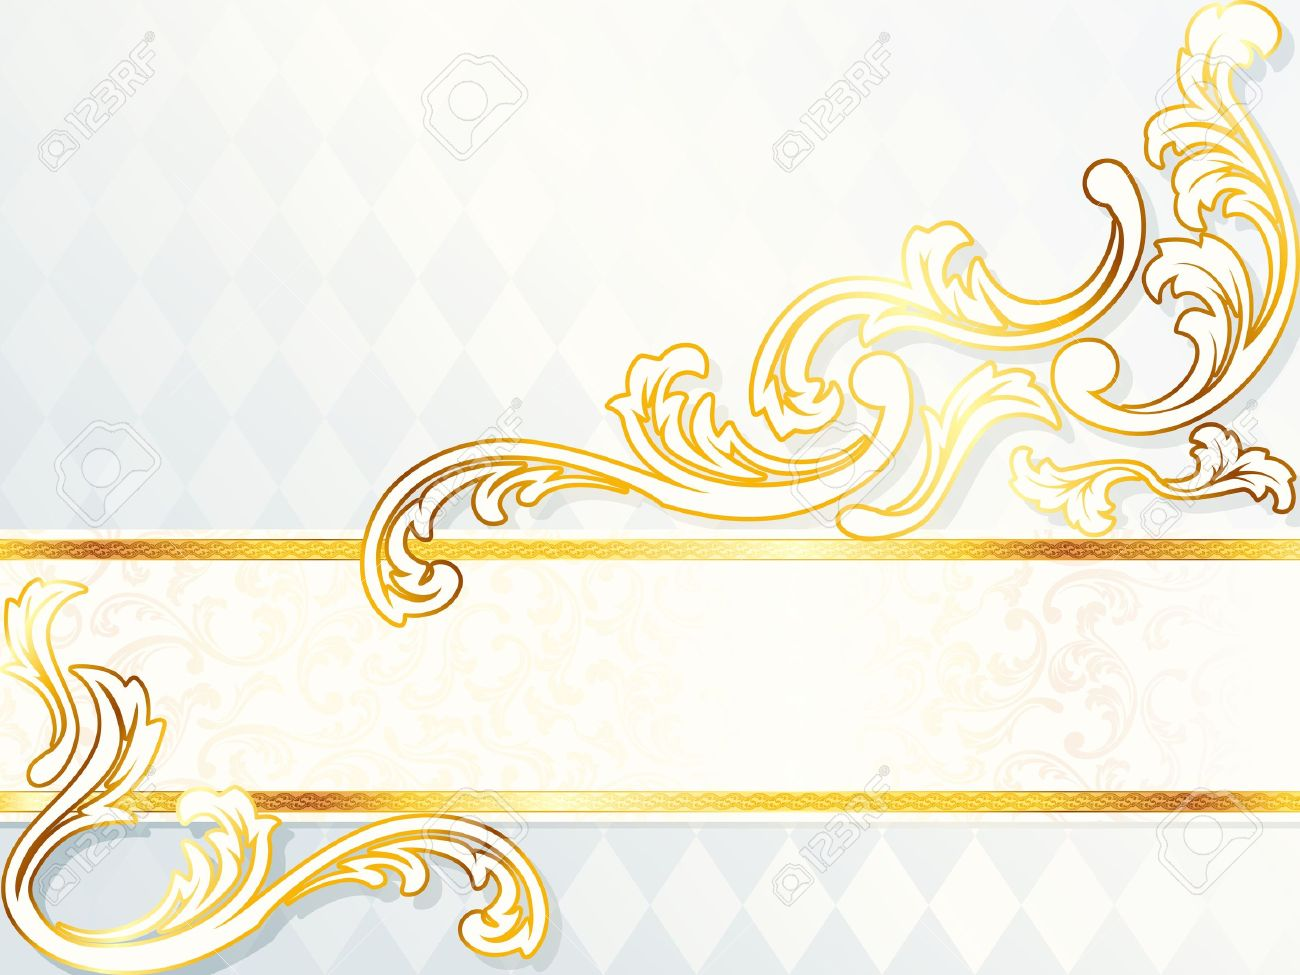 Elegant horizontal white and gold wedding banner. Graphics are grouped and in several layers for easy editing. The file can be scaled to any size. Stock Vector - 6700041